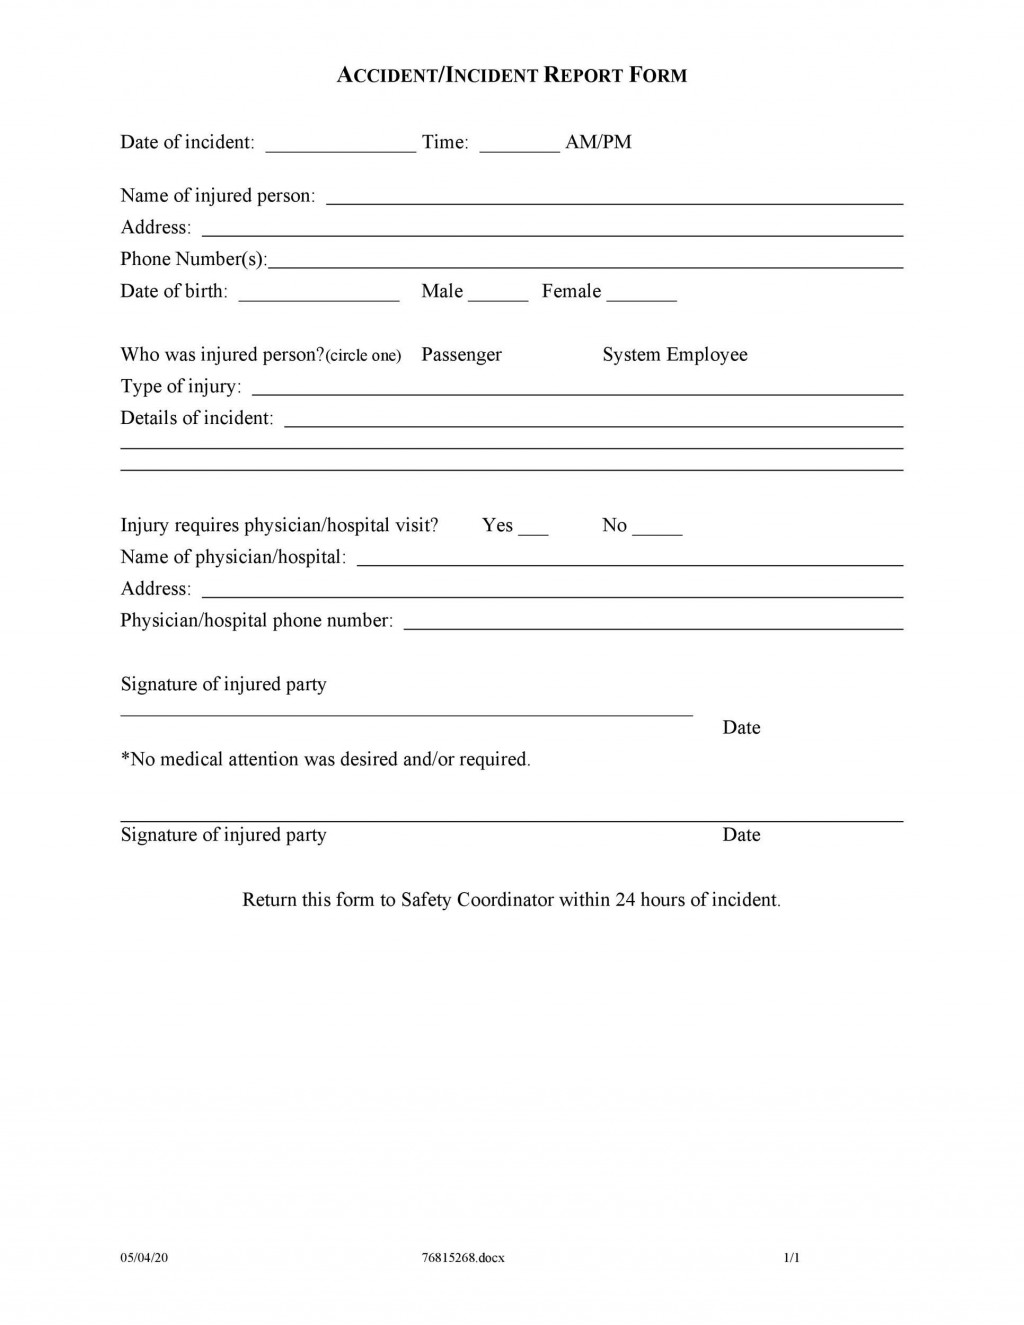 005 Awesome Accident Report Form Template Highest Clarity  Free South Africa PdfLarge